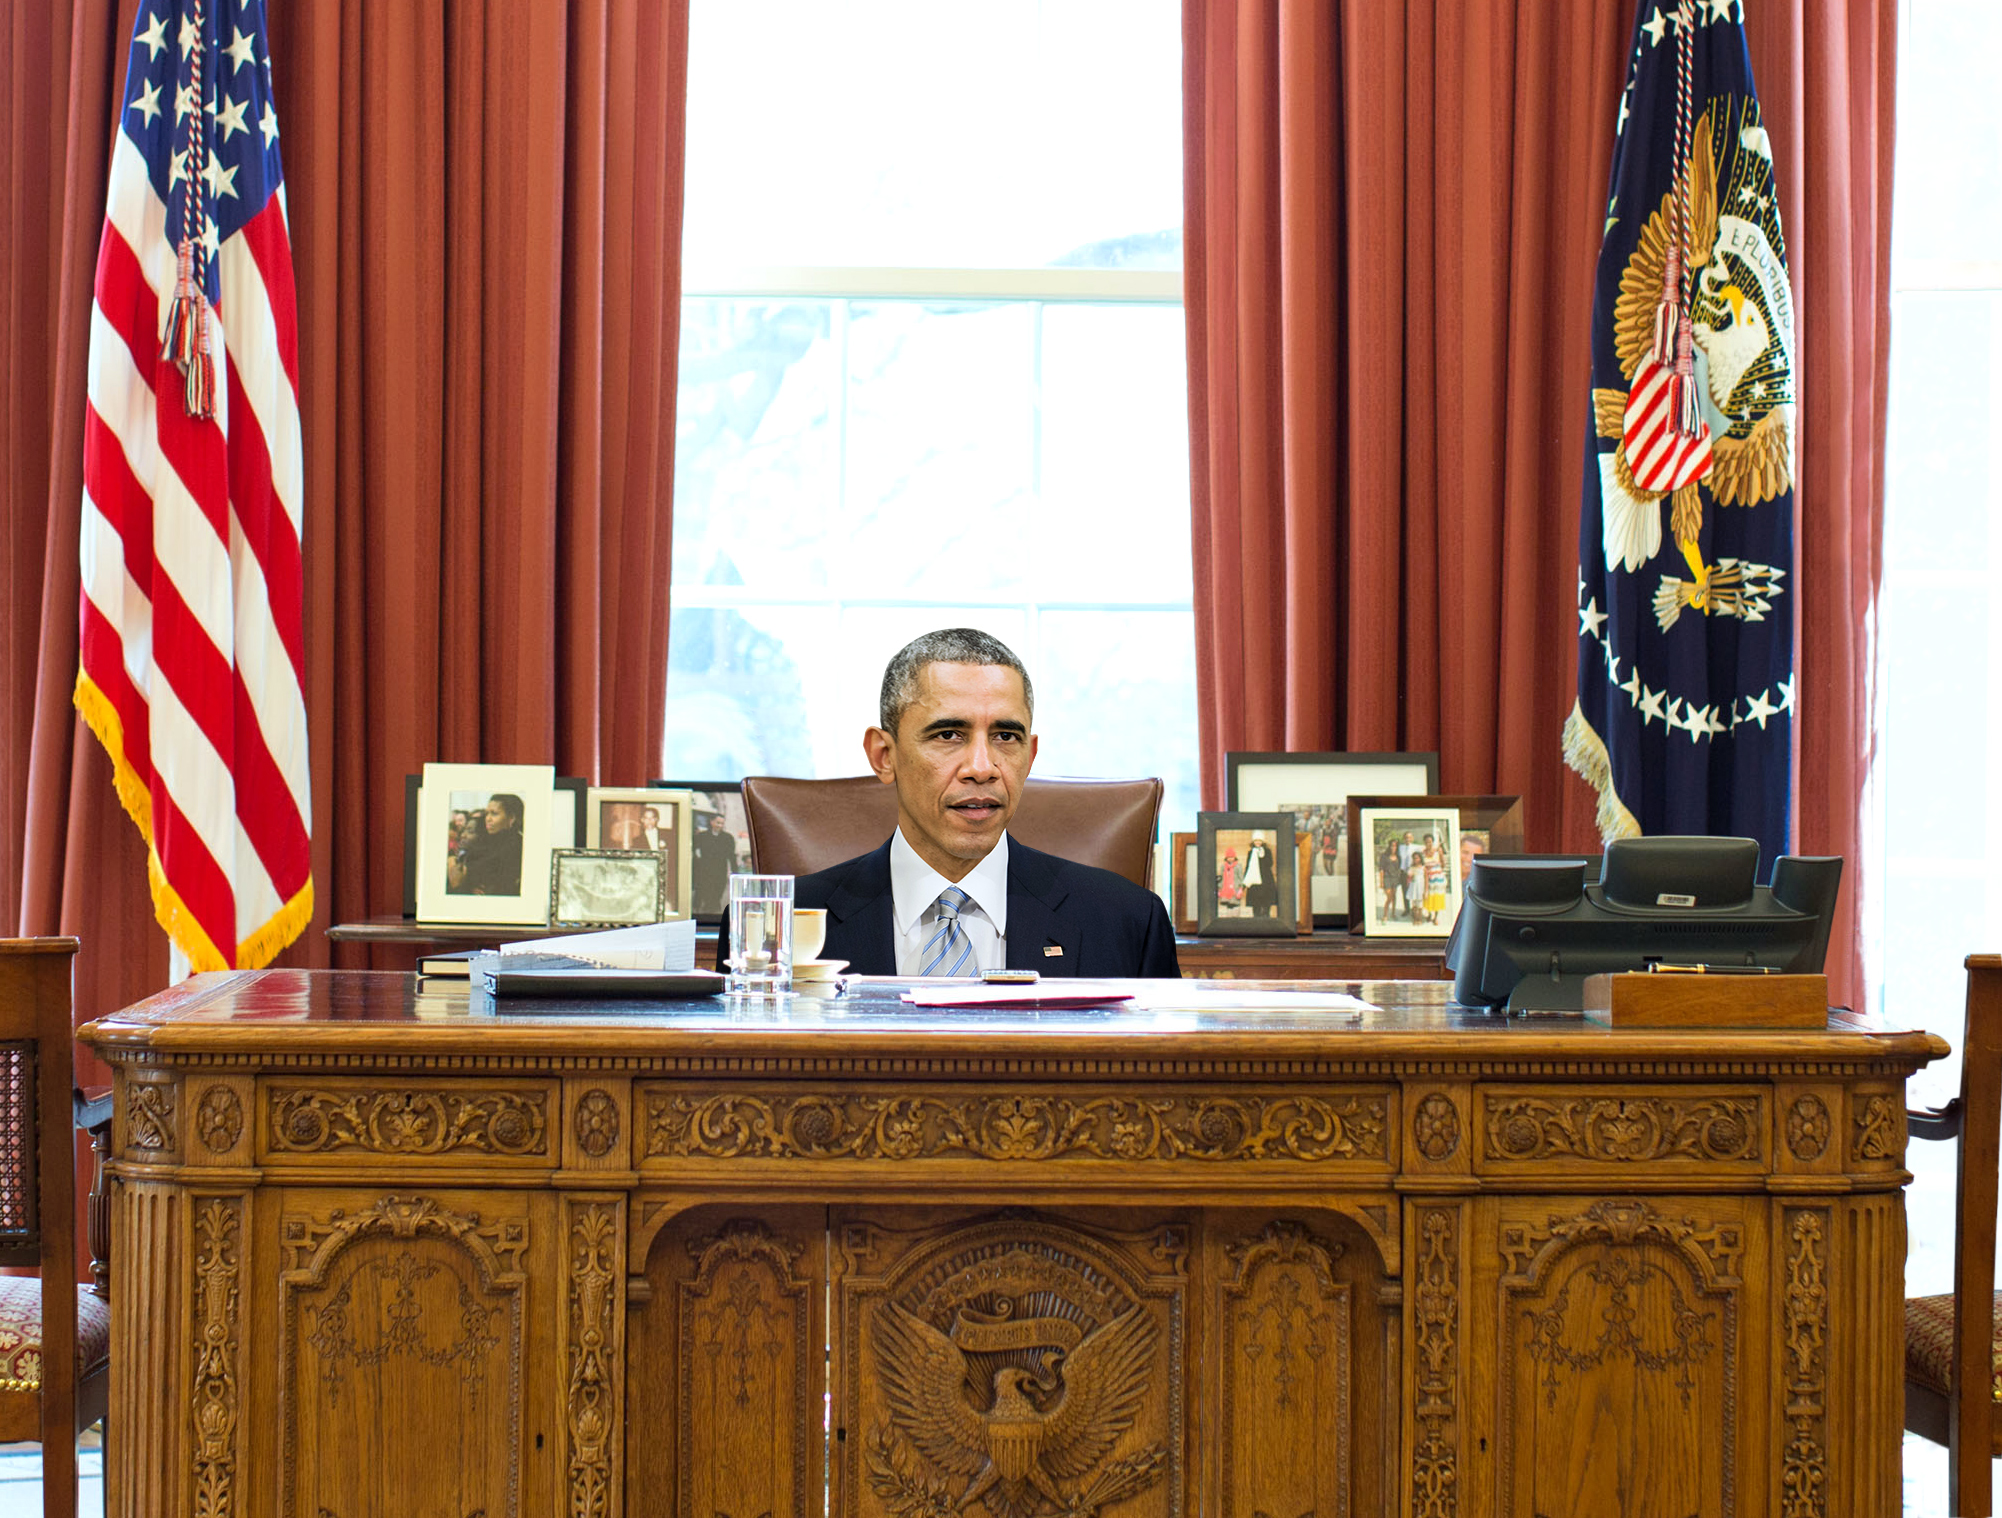 Obama Still Hasn't Figured Out How To Adjust Height Of Oval Office Desk Chair                                May 22, 2015